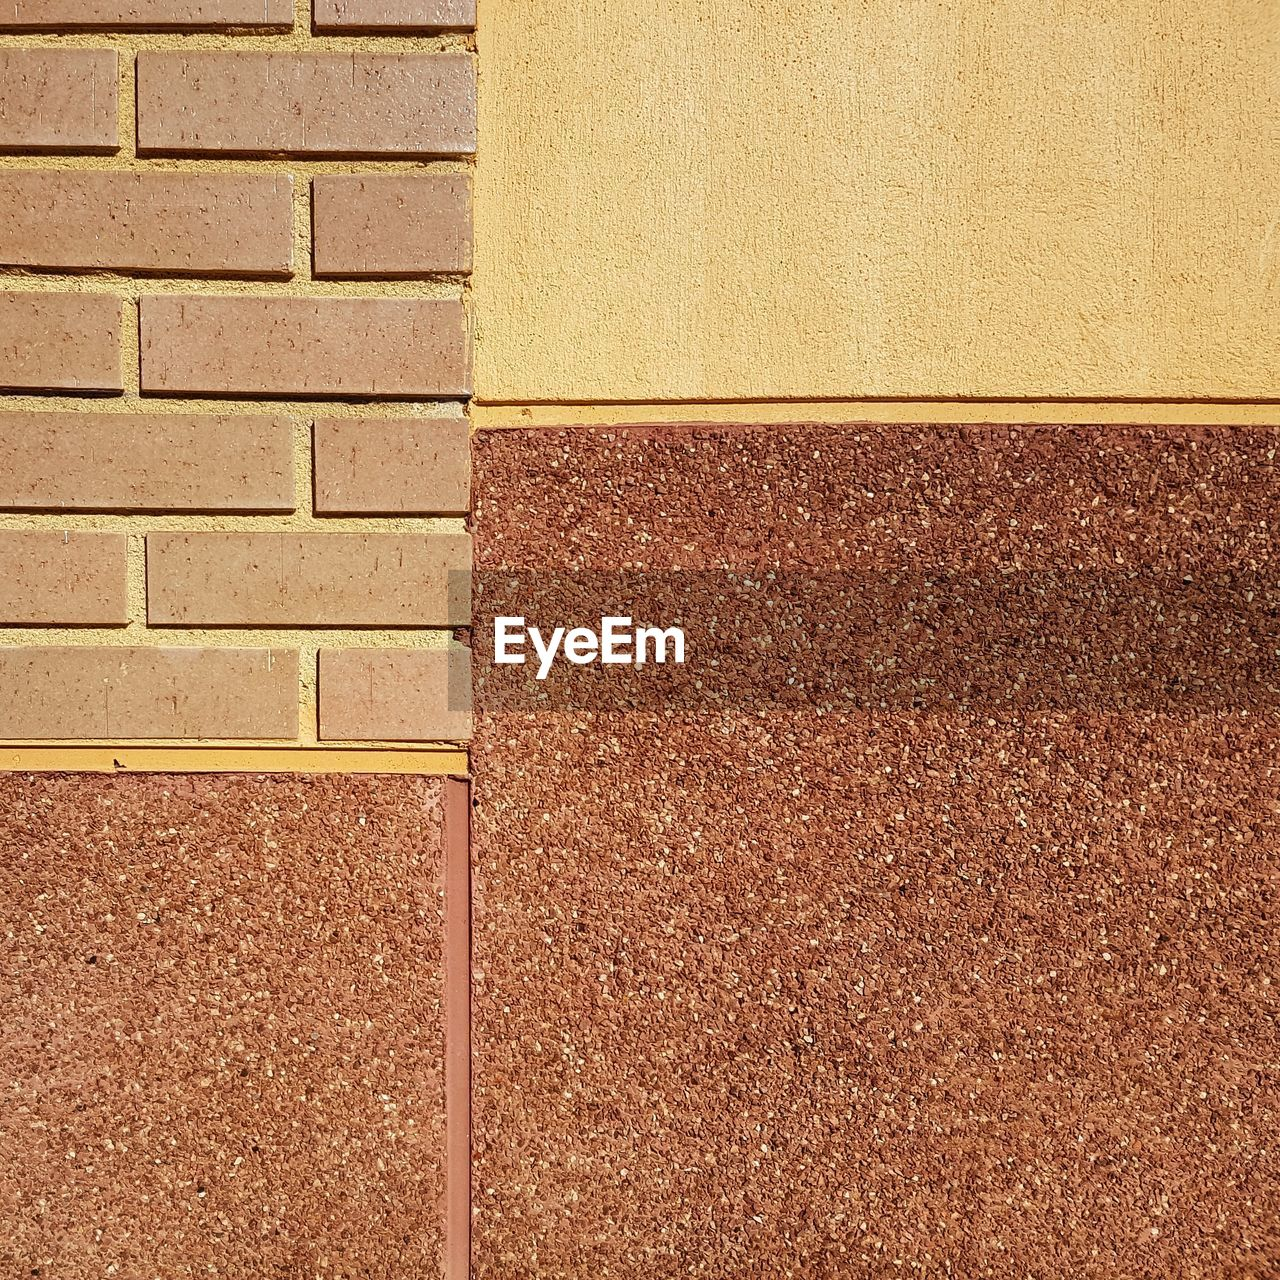 wall - building feature, architecture, built structure, textured, day, no people, outdoors, yellow, building exterior, close-up